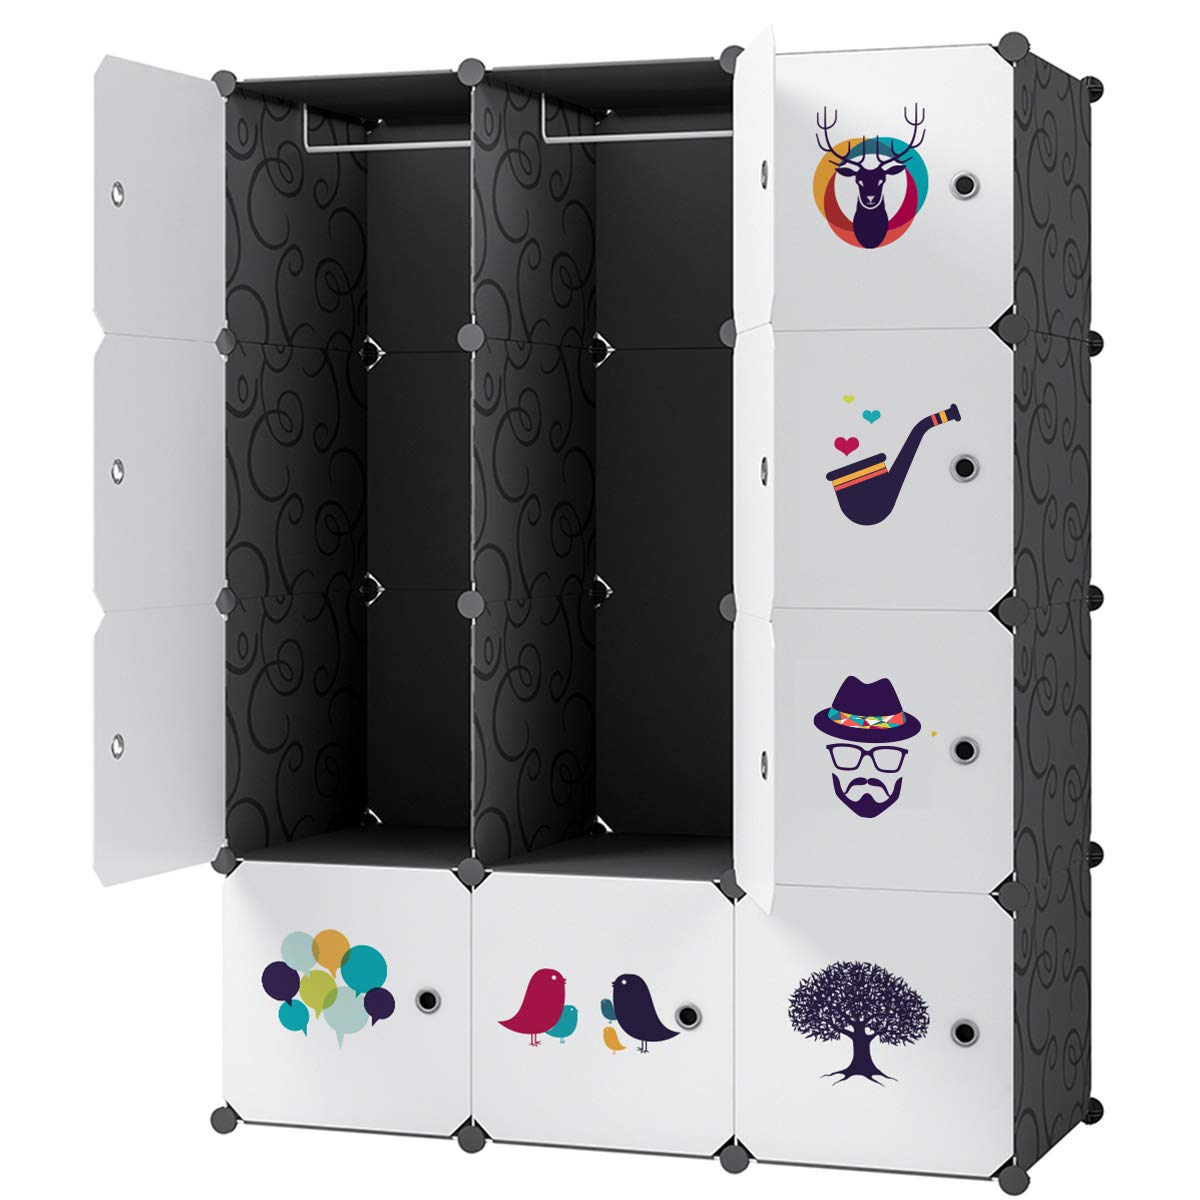 KOUSI Portable Wardrobe Closet for Bedroom Clothes Armoire Dresser Multi-Use Cube Storage Organizer (6 Cubes+2 Hanging Sections(Black))